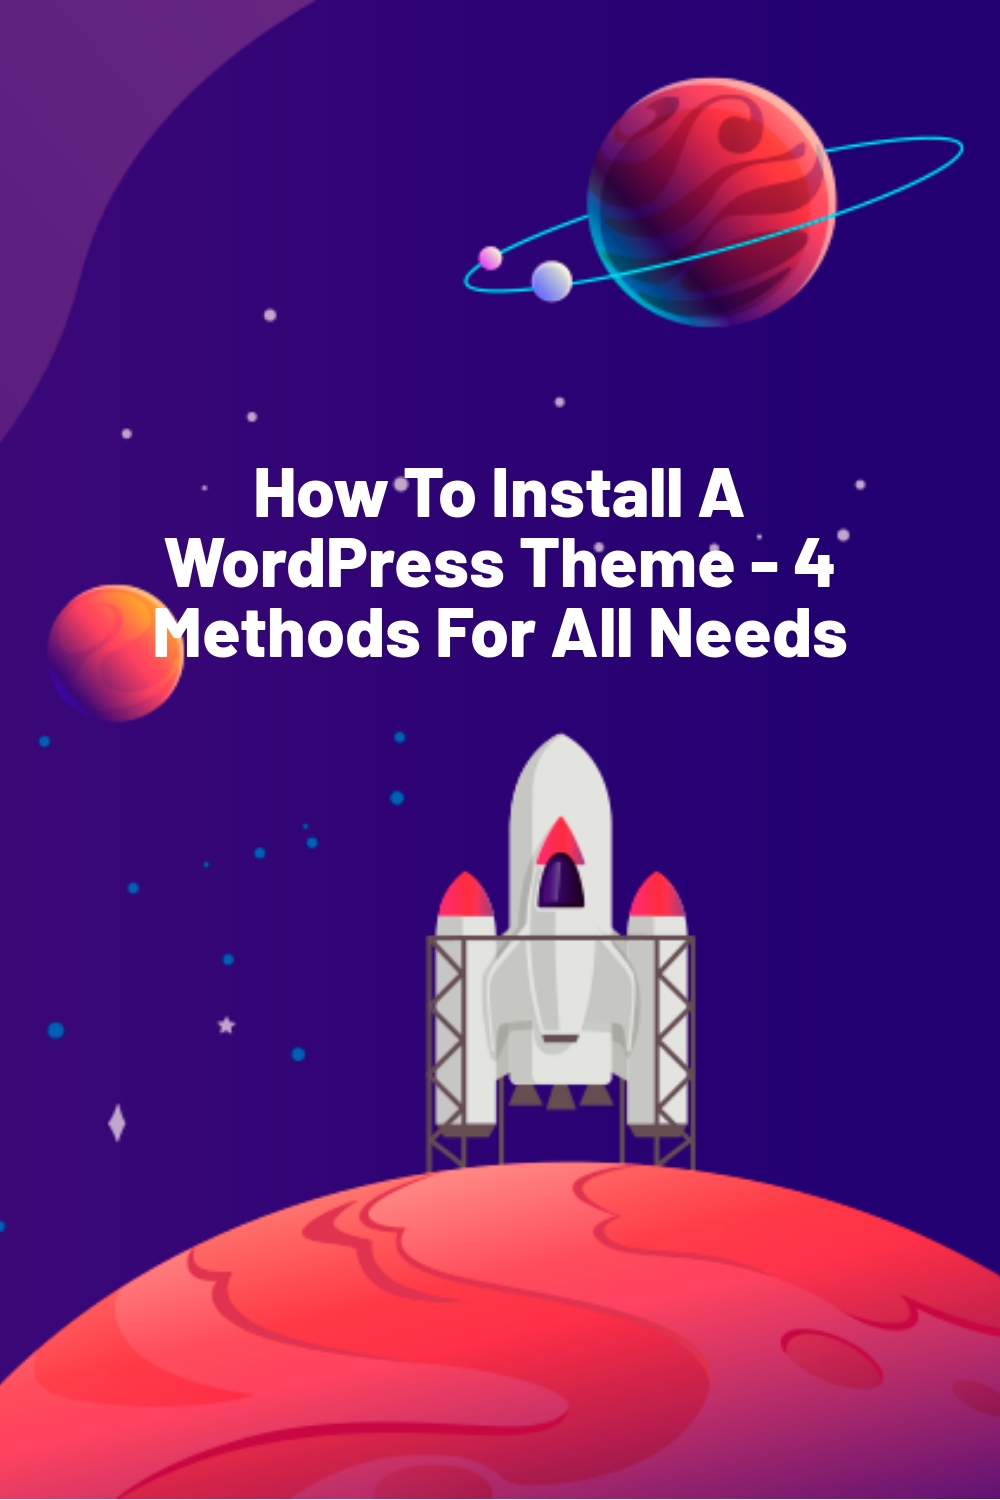 How To Install A WordPress Theme – 4 Methods For All Needs